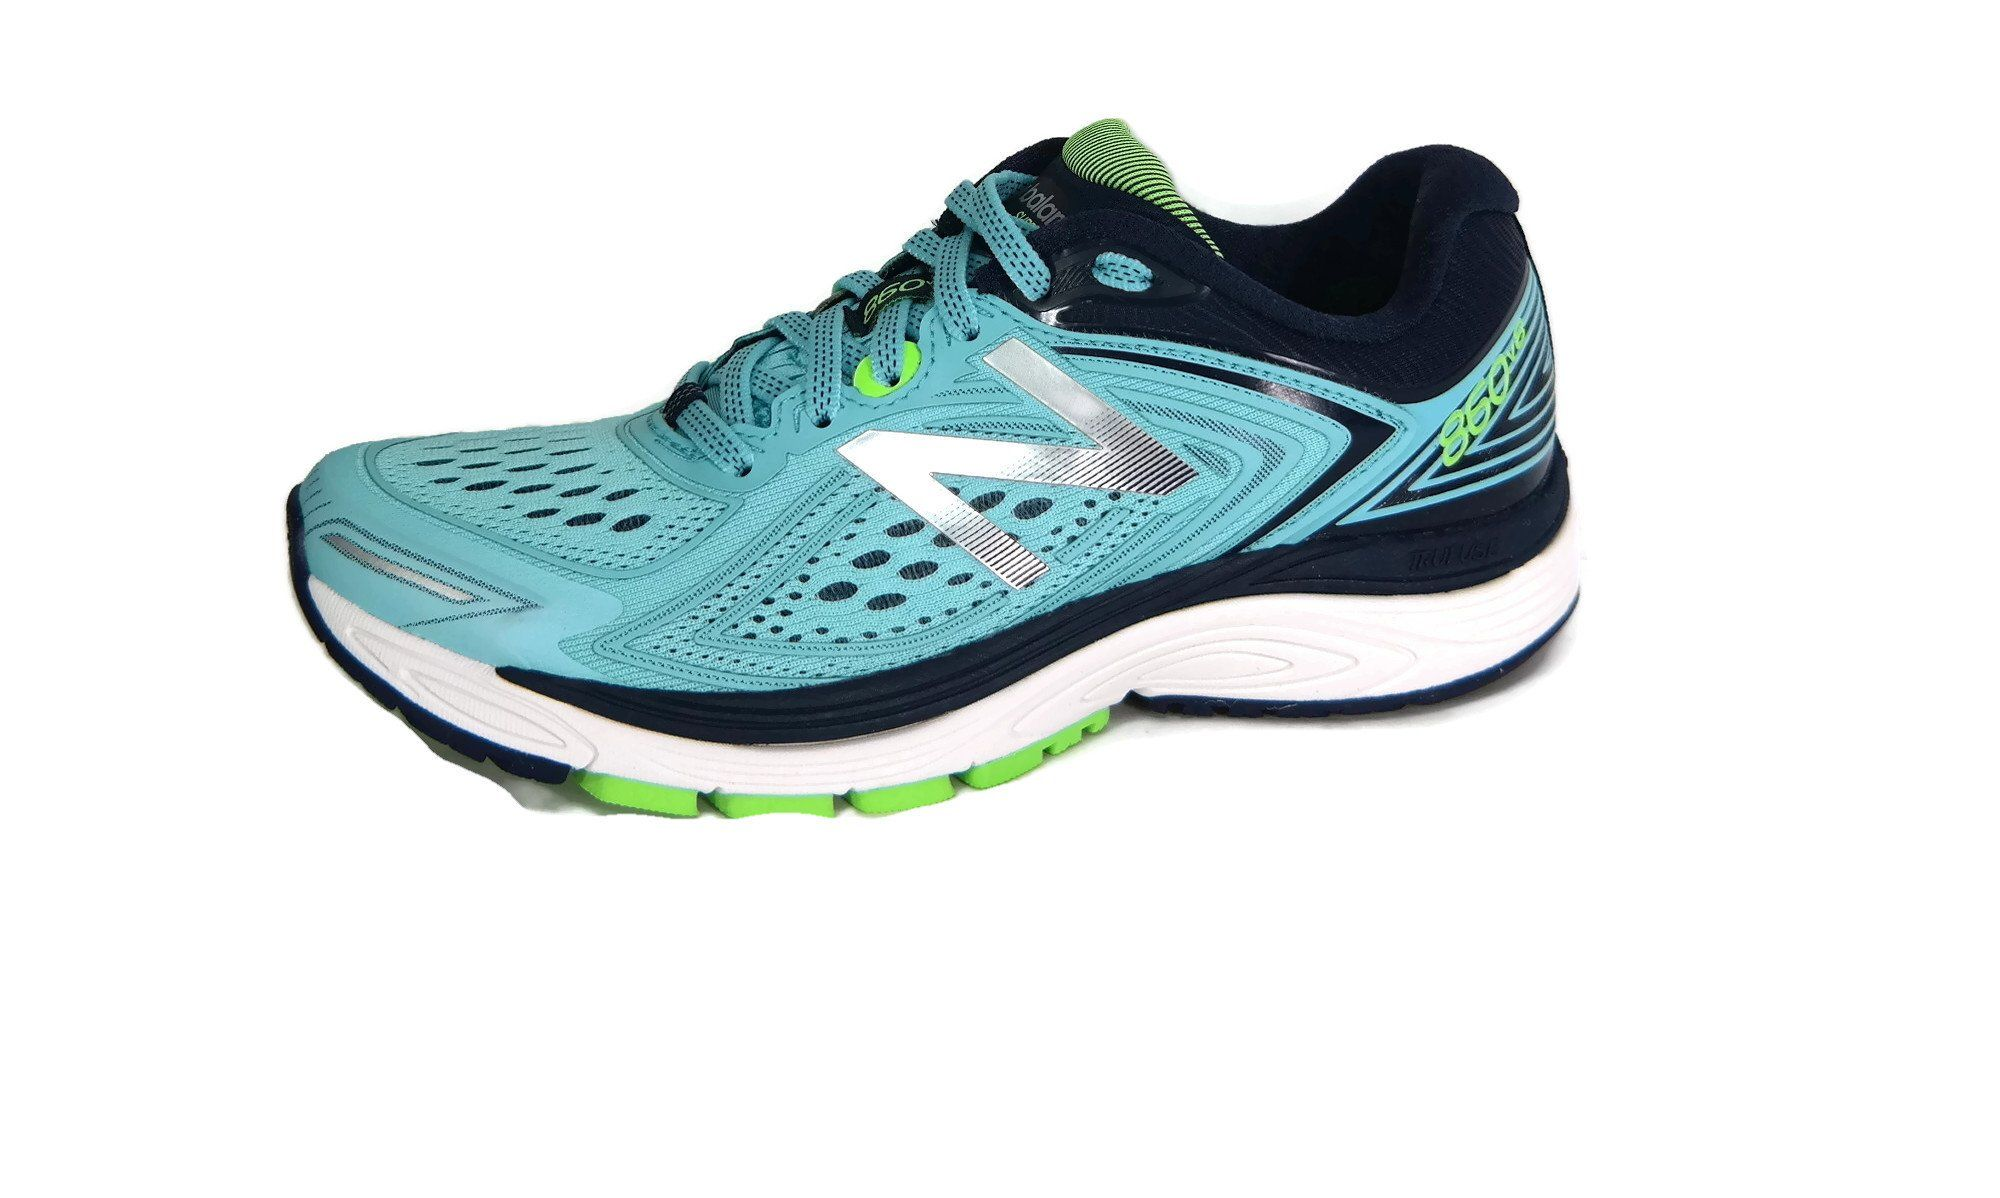 Sneakers fashion, Road running shoes